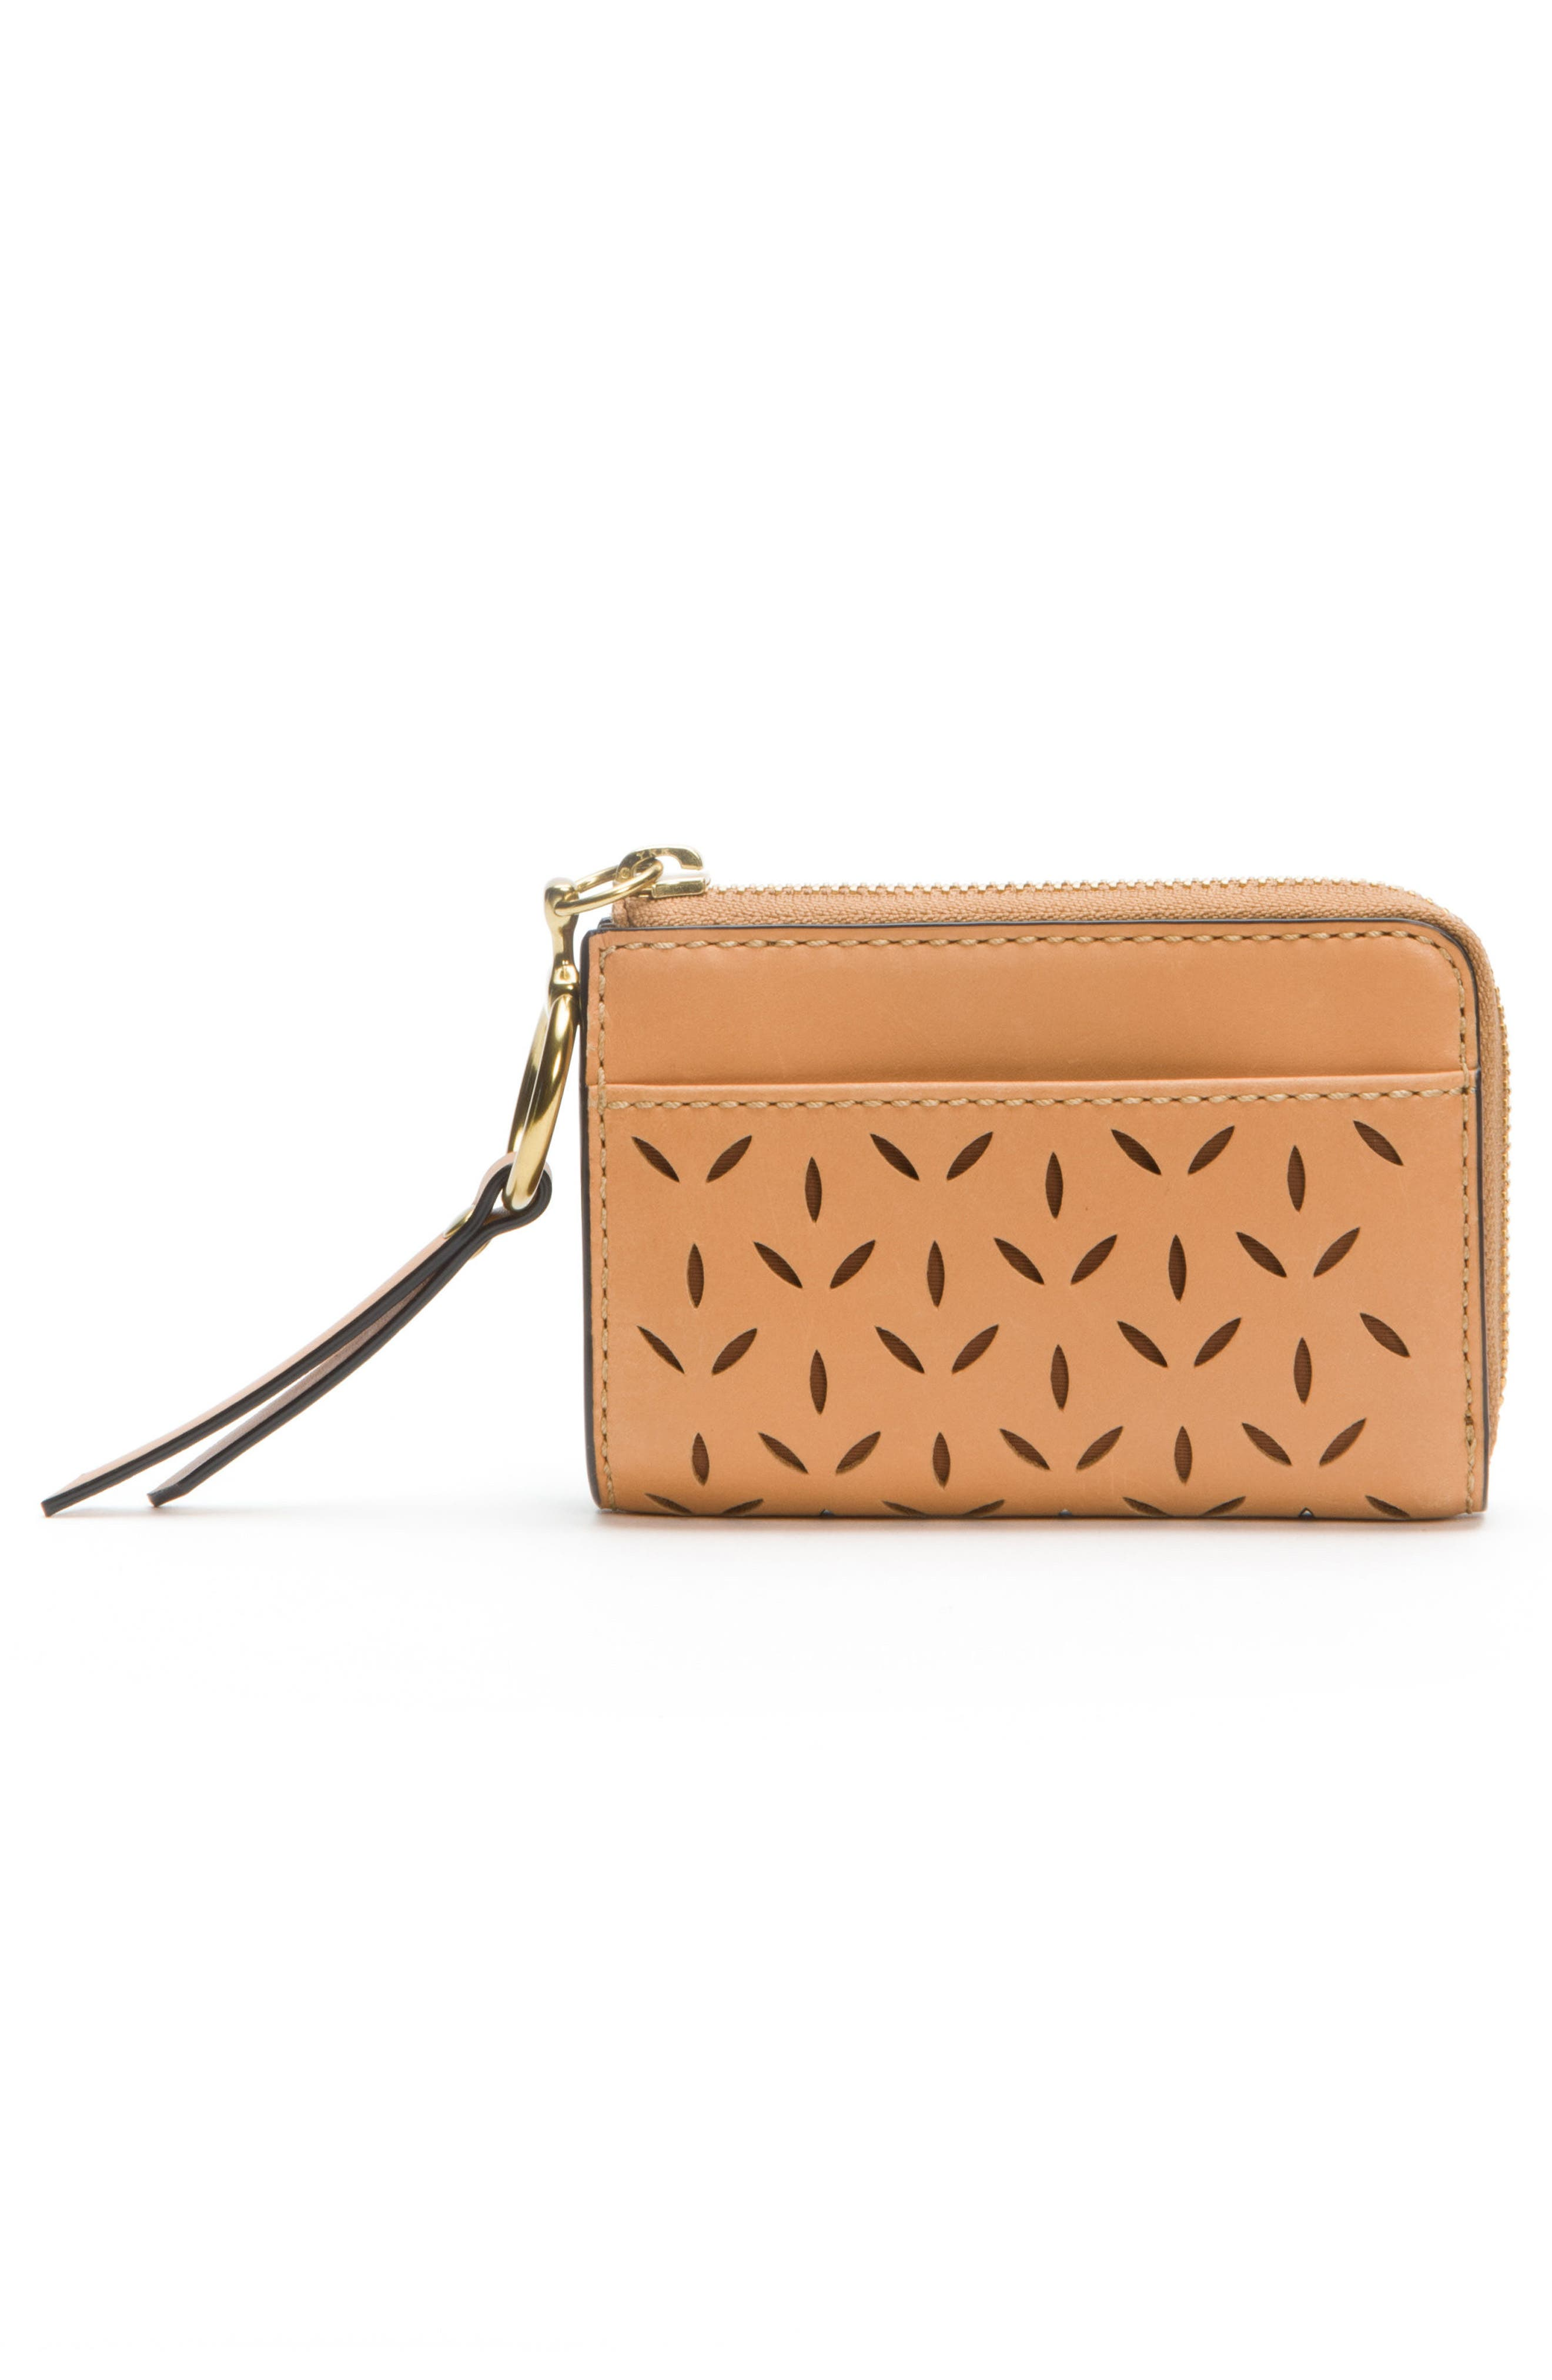 Ilana Small Perforated Leather Zip Wallet,                             Alternate thumbnail 9, color,